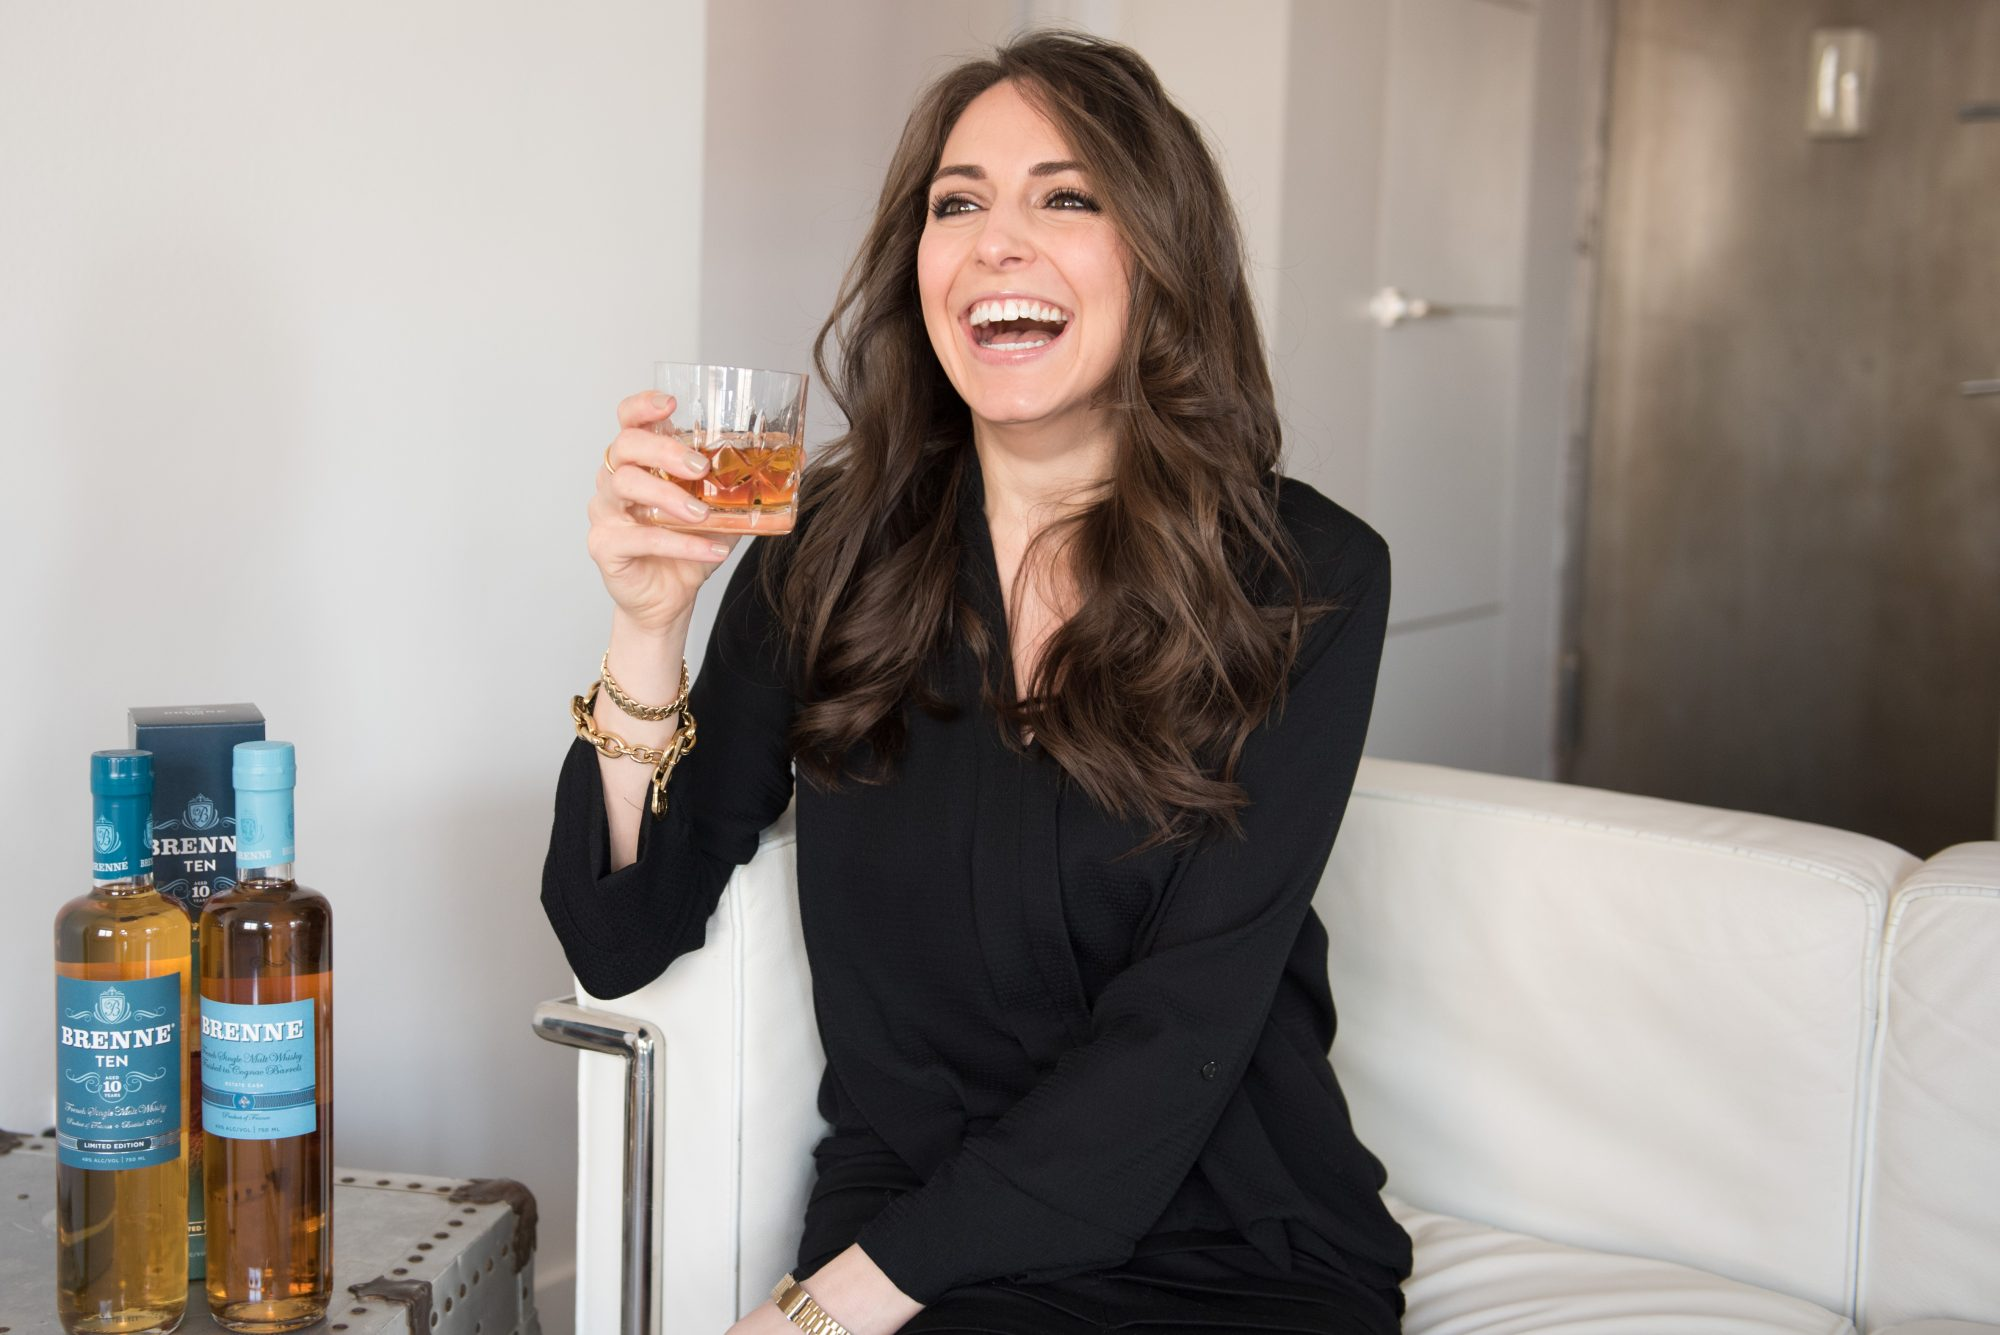 How This Former Ballerina Launched a Whisky Brand, and Found Herself in the Process